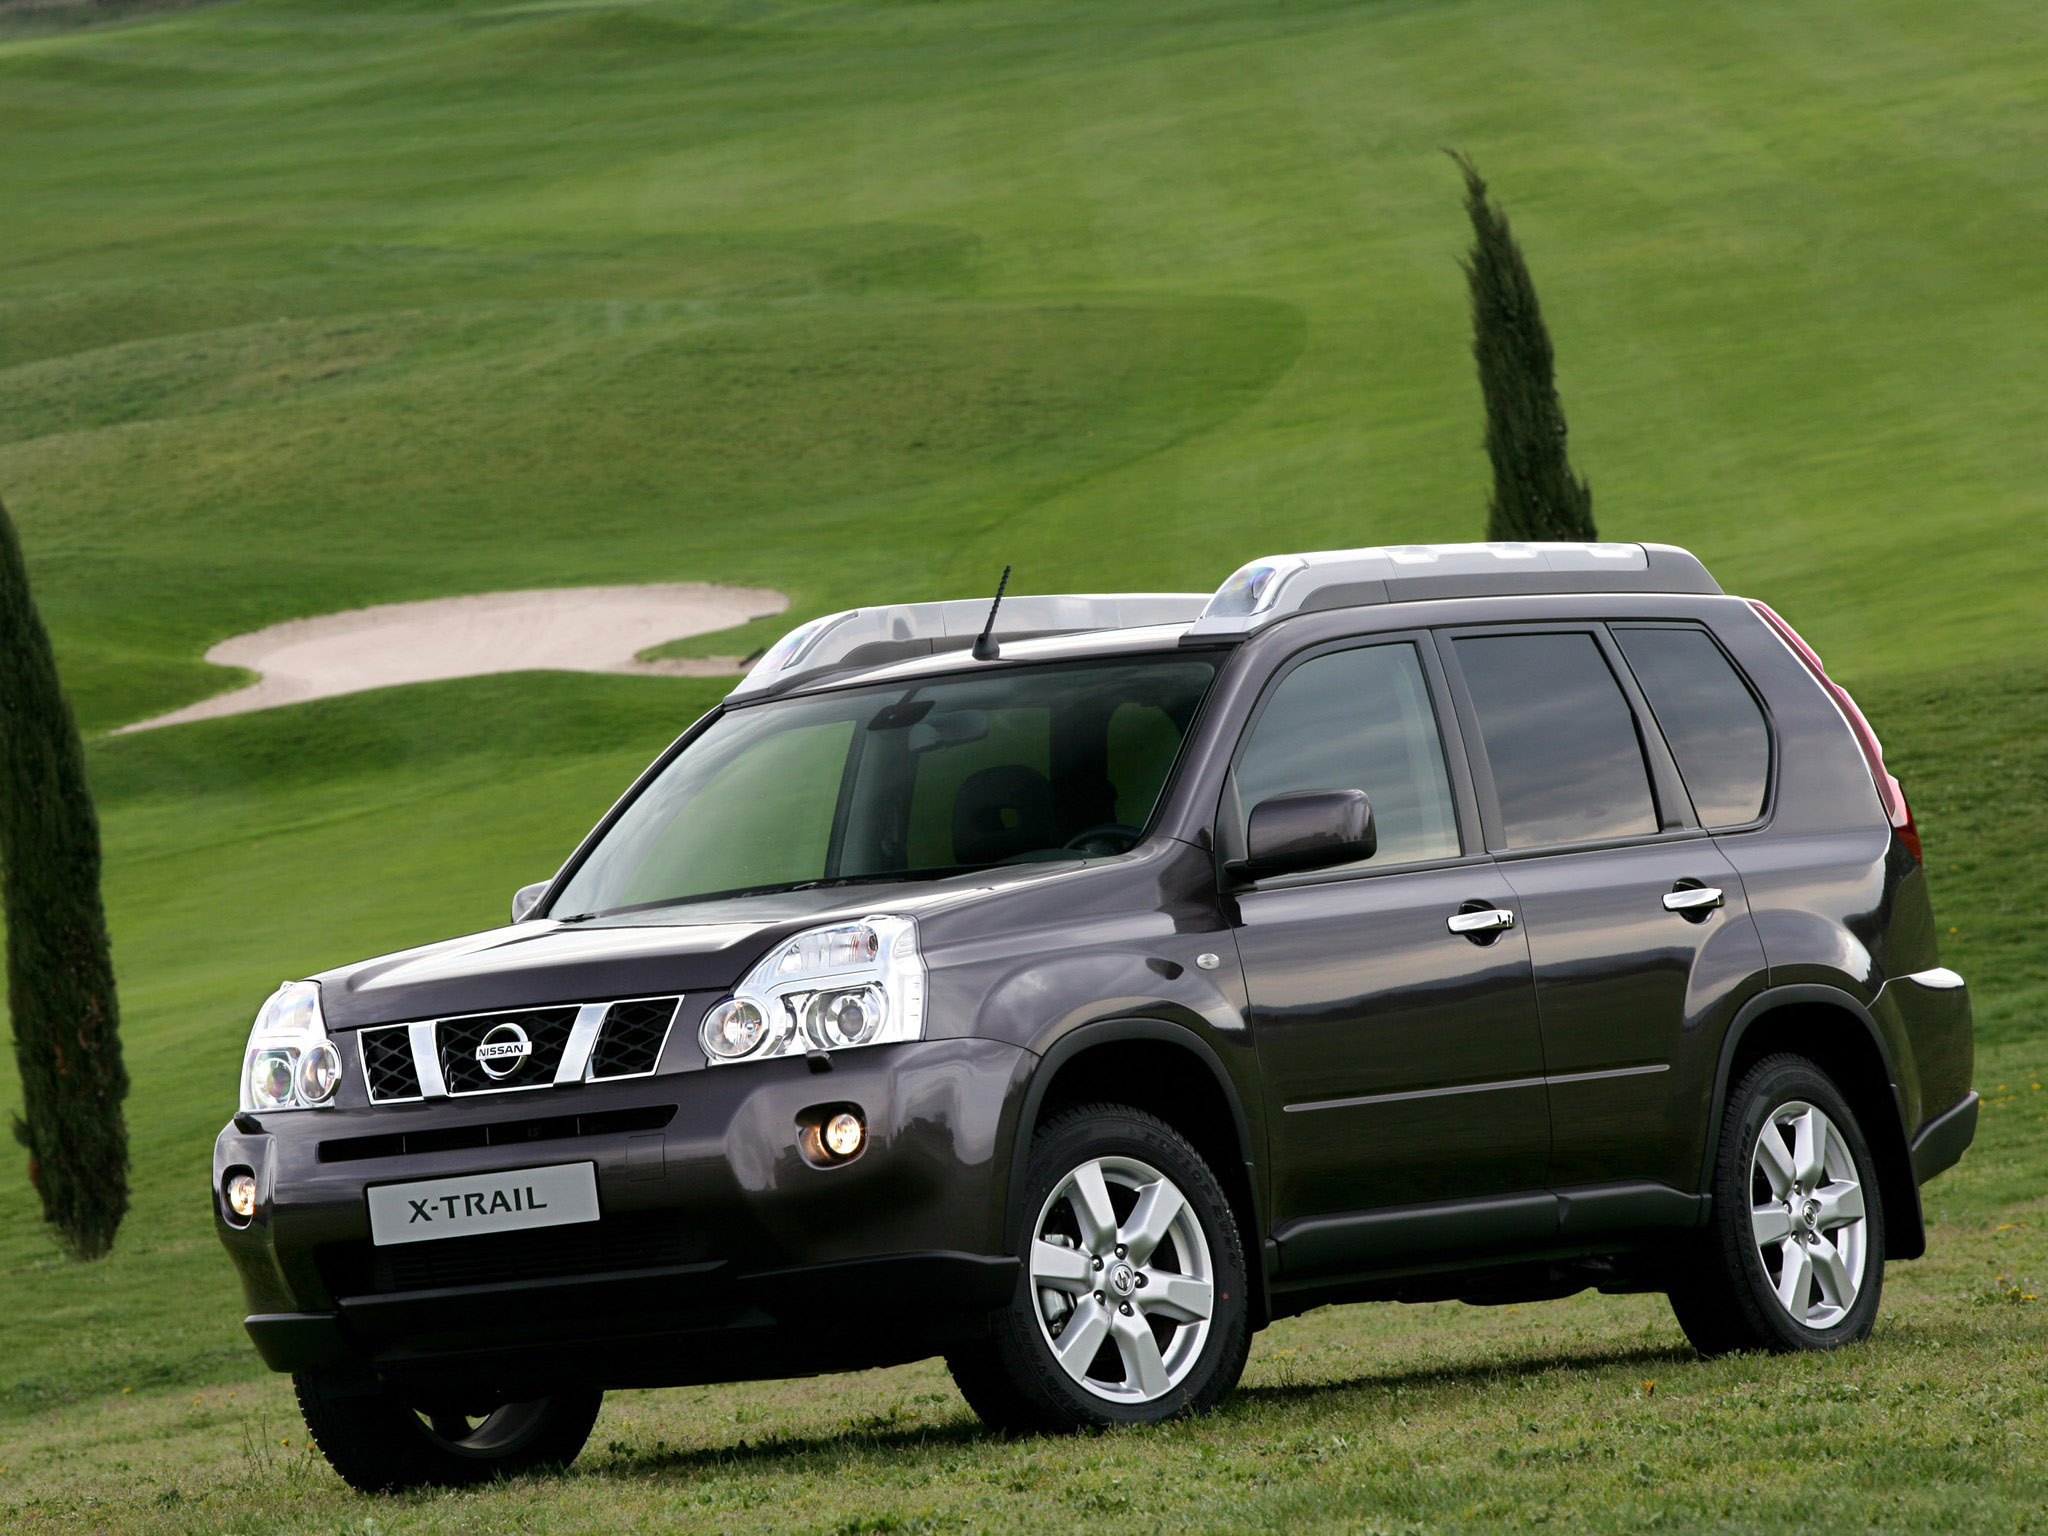 nissan x trail 2007 nissan x trail 2007 photo 05 car in pictures car photo gallery. Black Bedroom Furniture Sets. Home Design Ideas